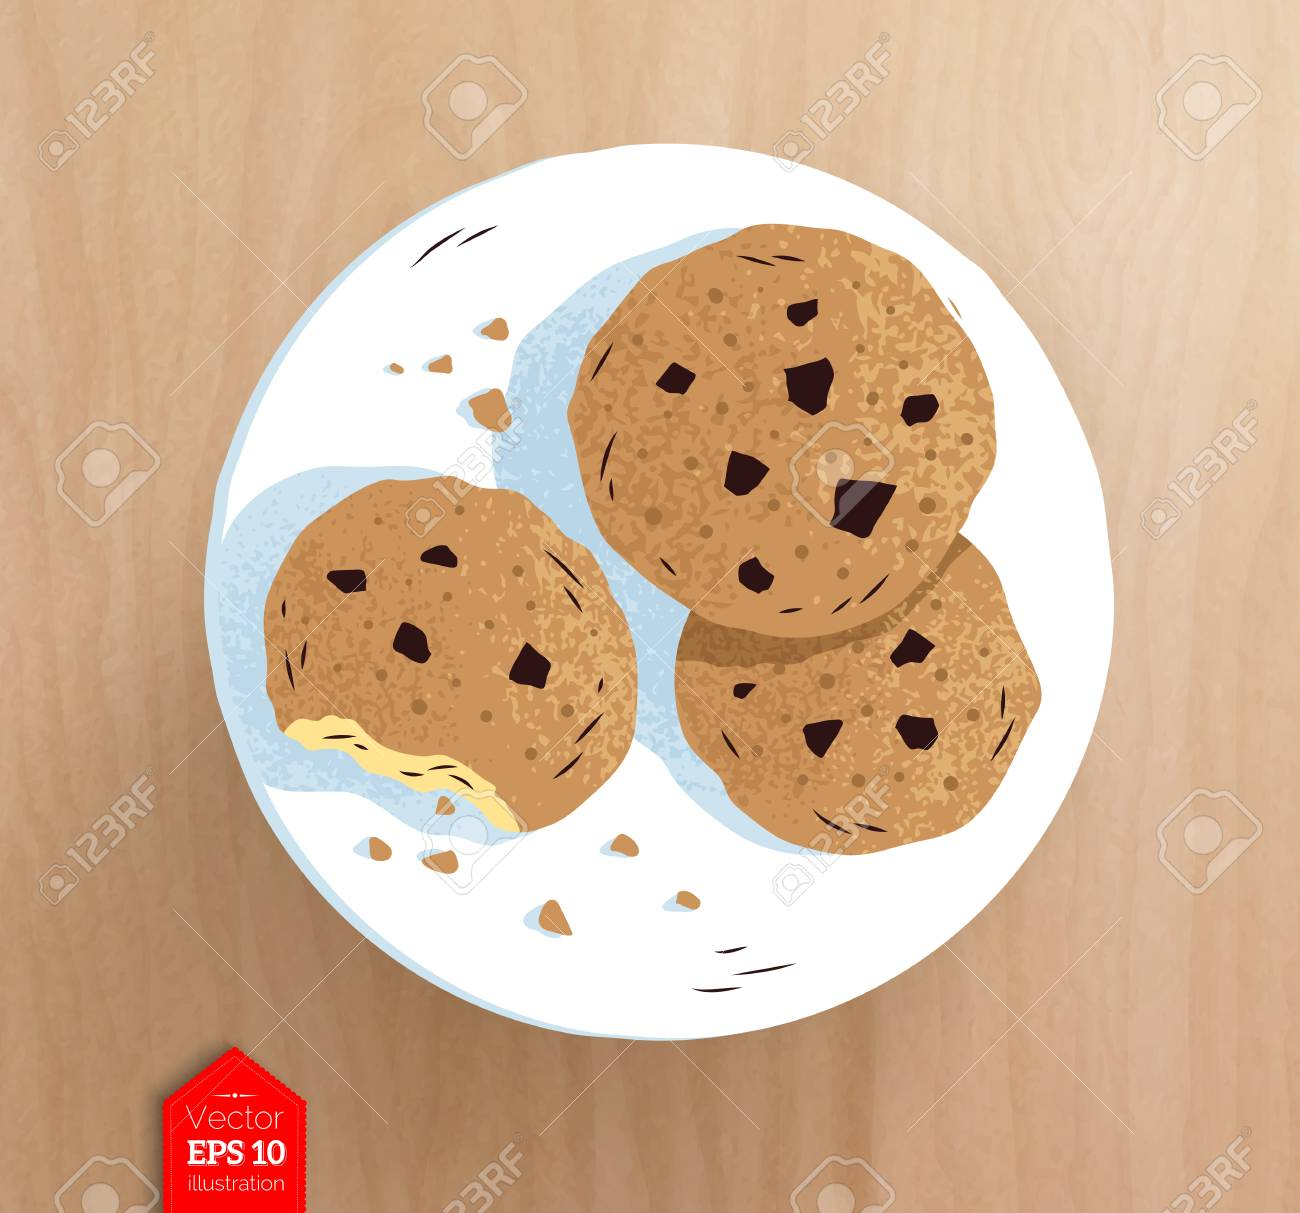 Top view illustration of cookies on plate - 88089616